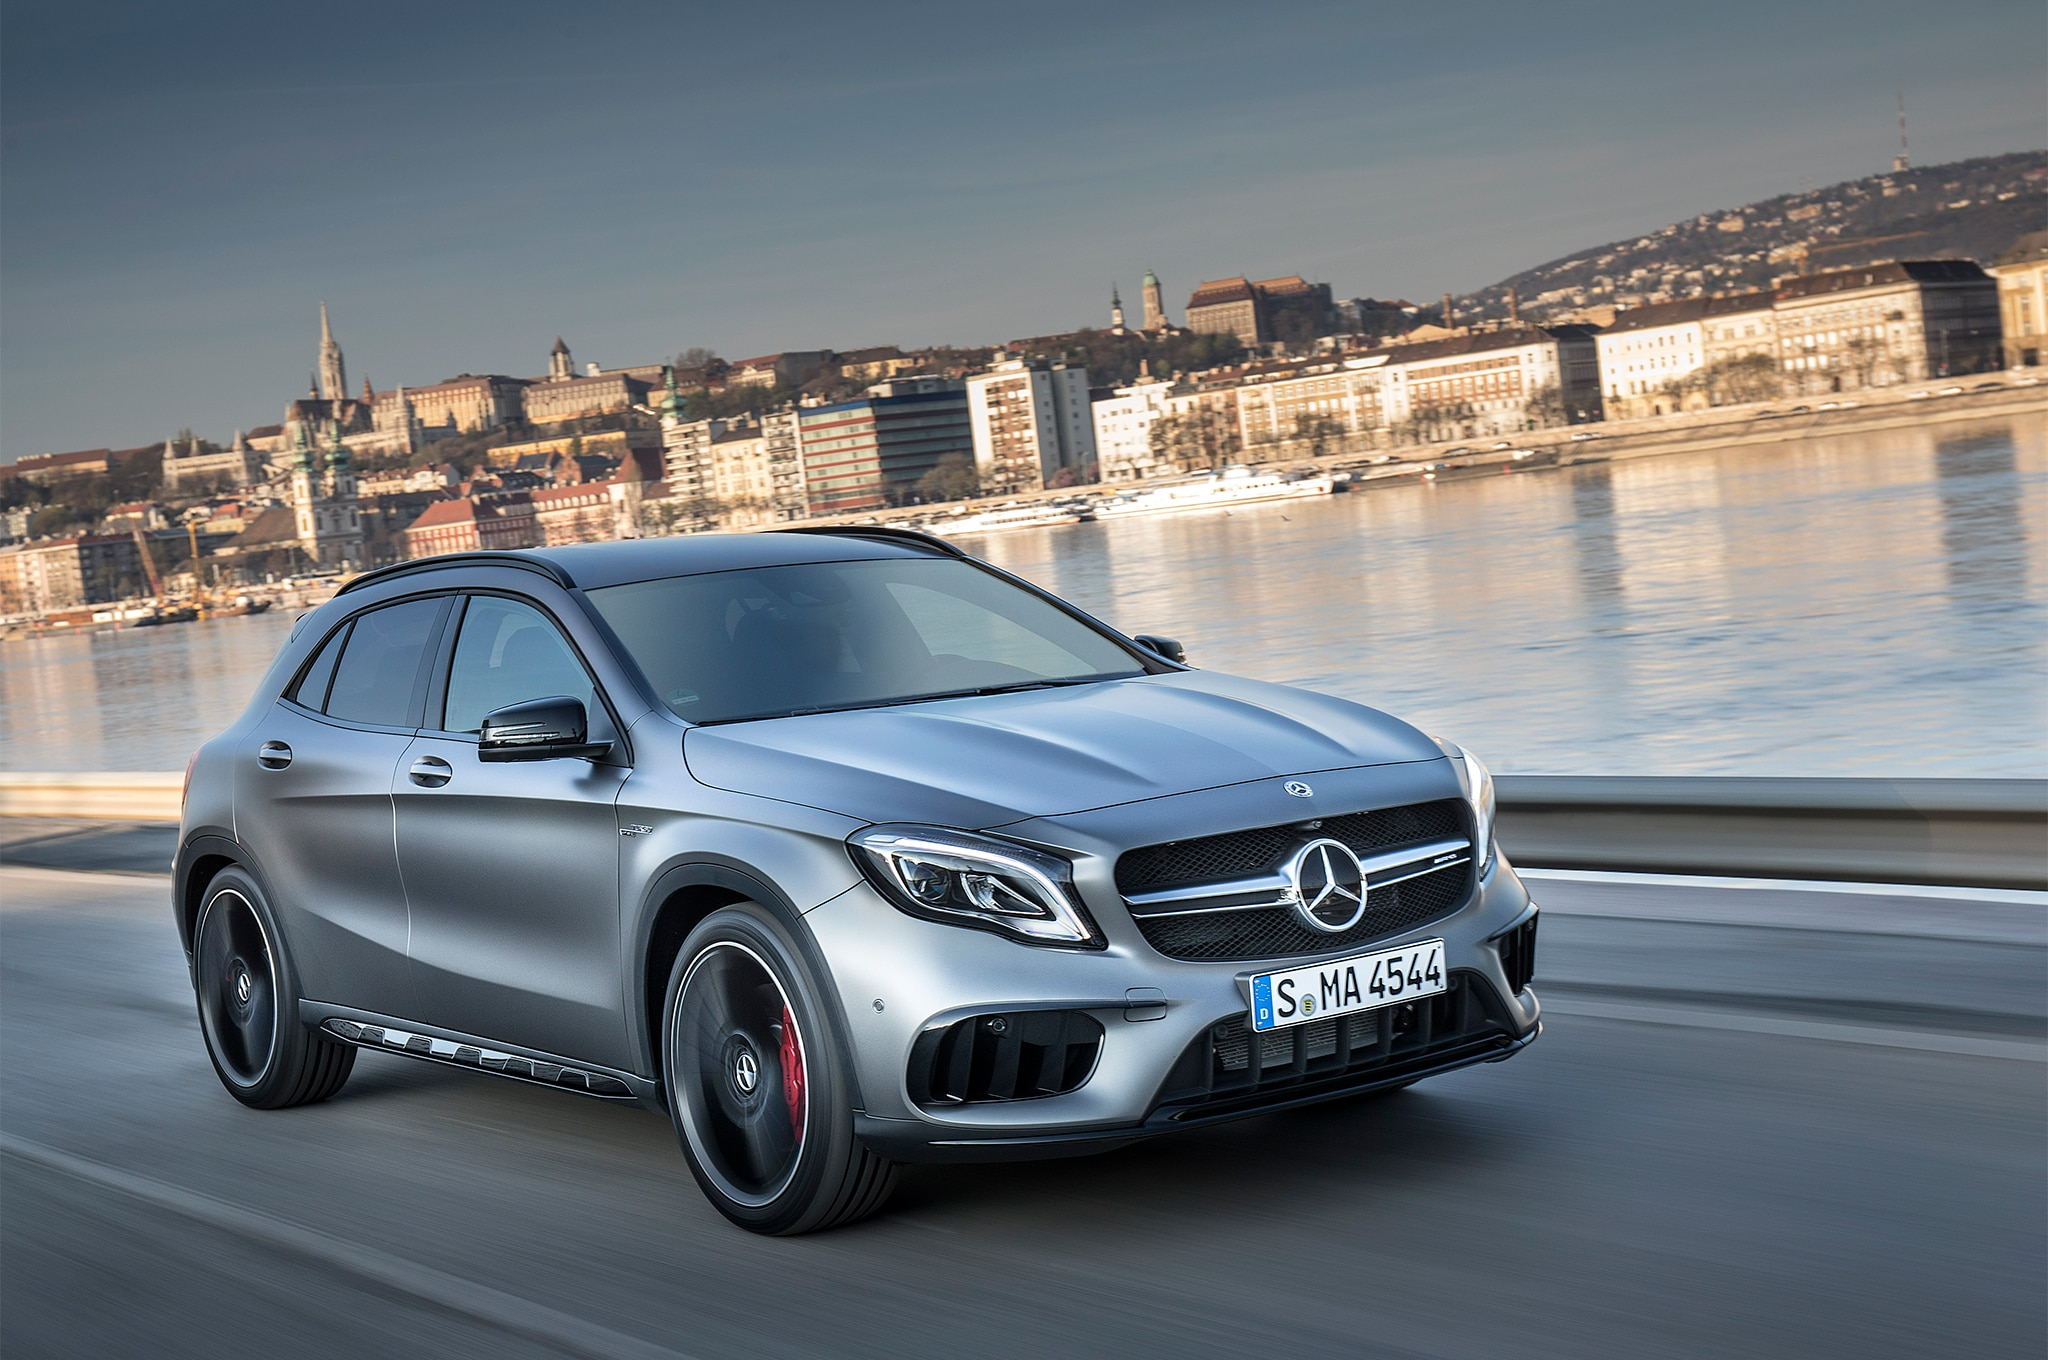 2018 Mercedes AMG GLA45 4MATIC Front Three Quarter In Motion 03